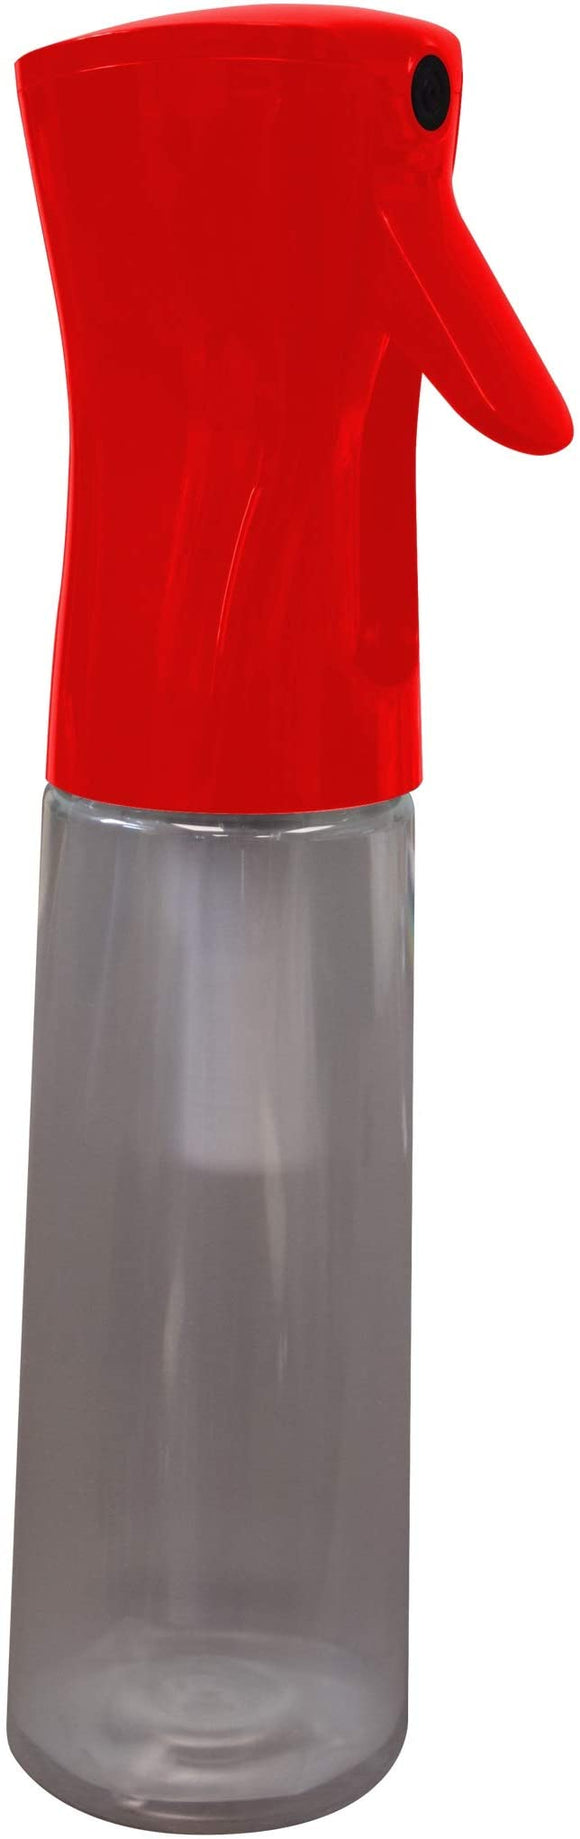 Continuous Fine Mist Spray Bottle (8 oz) Red Only